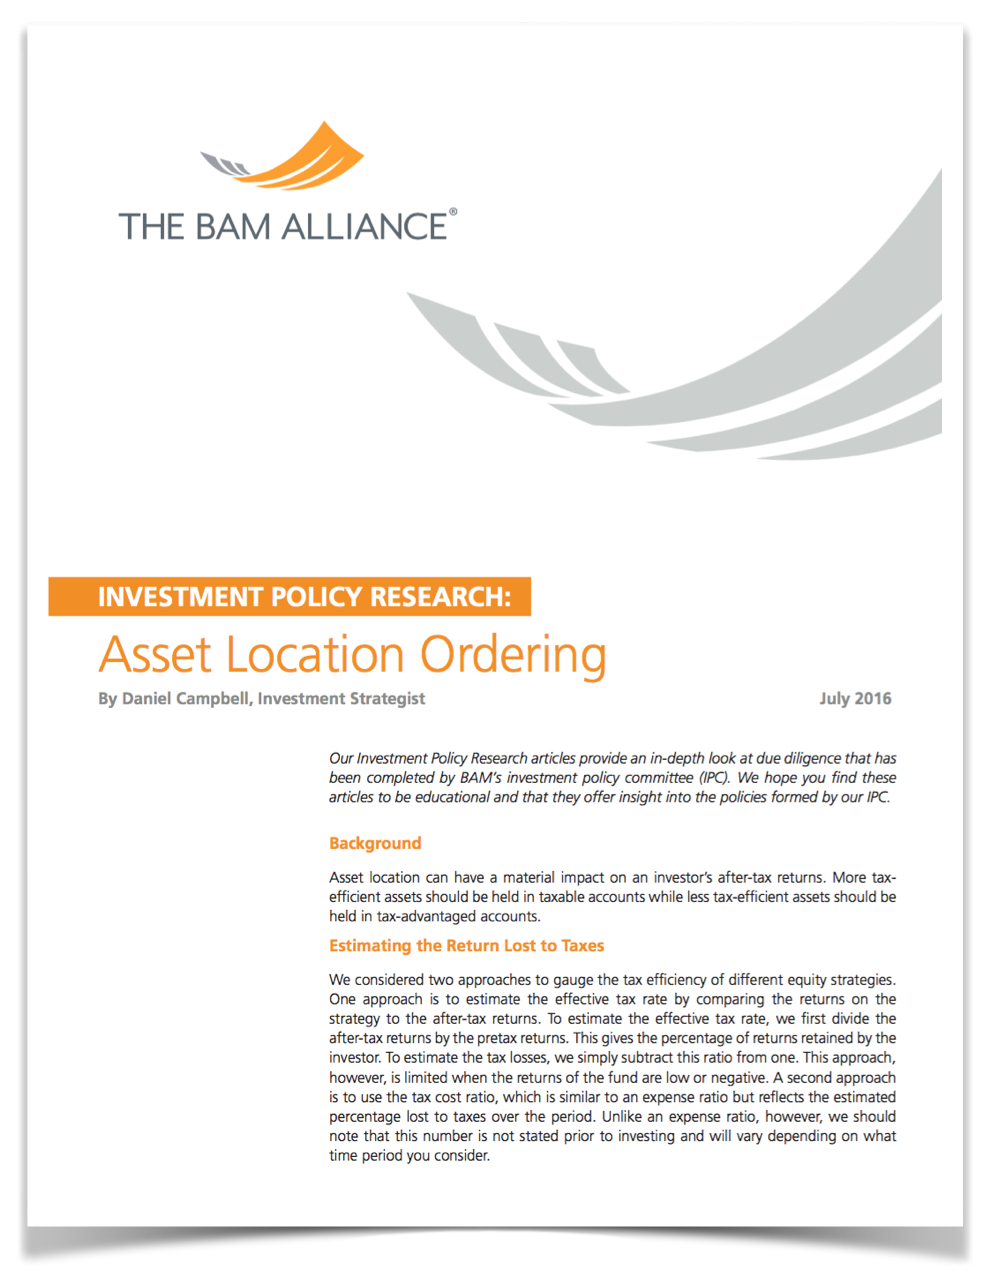 assetlocationordering